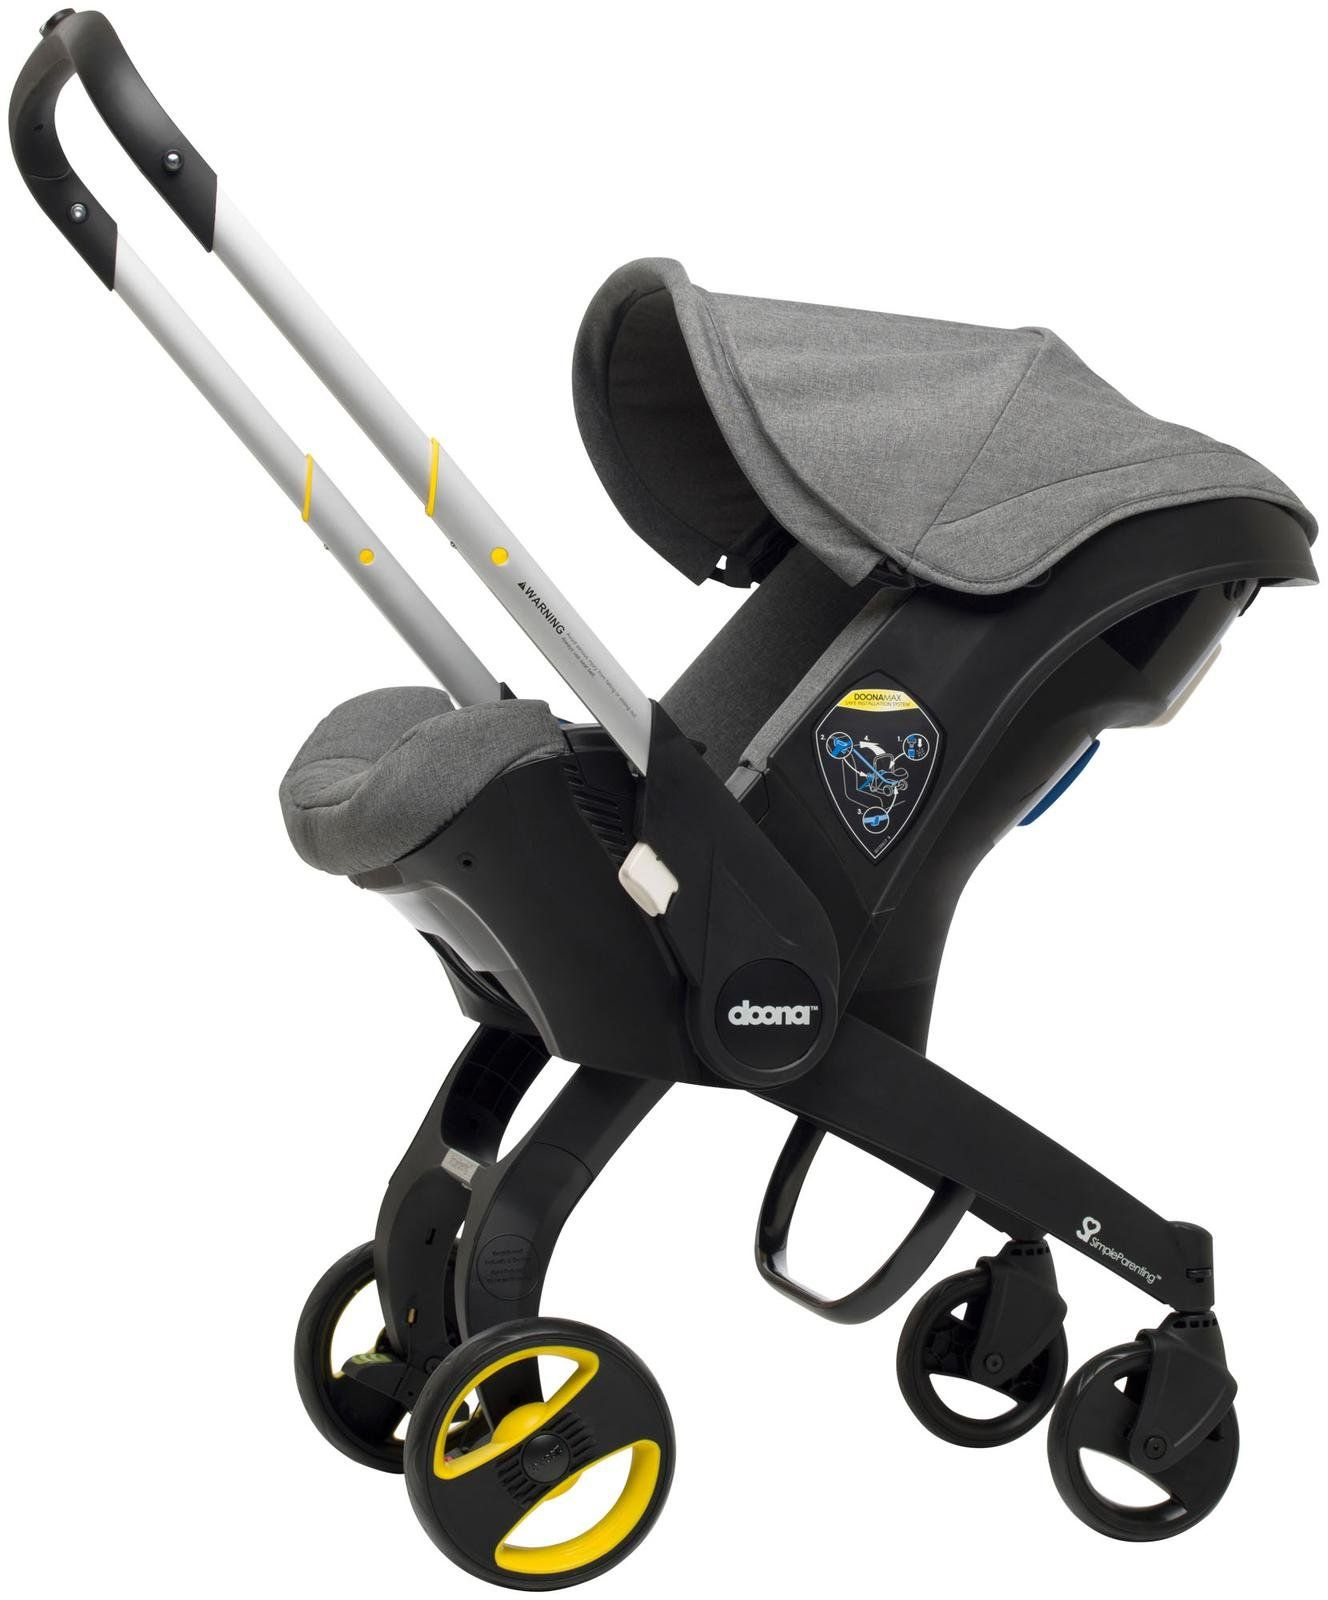 Doona Infant Car Seat & Base Storm Doona car seat